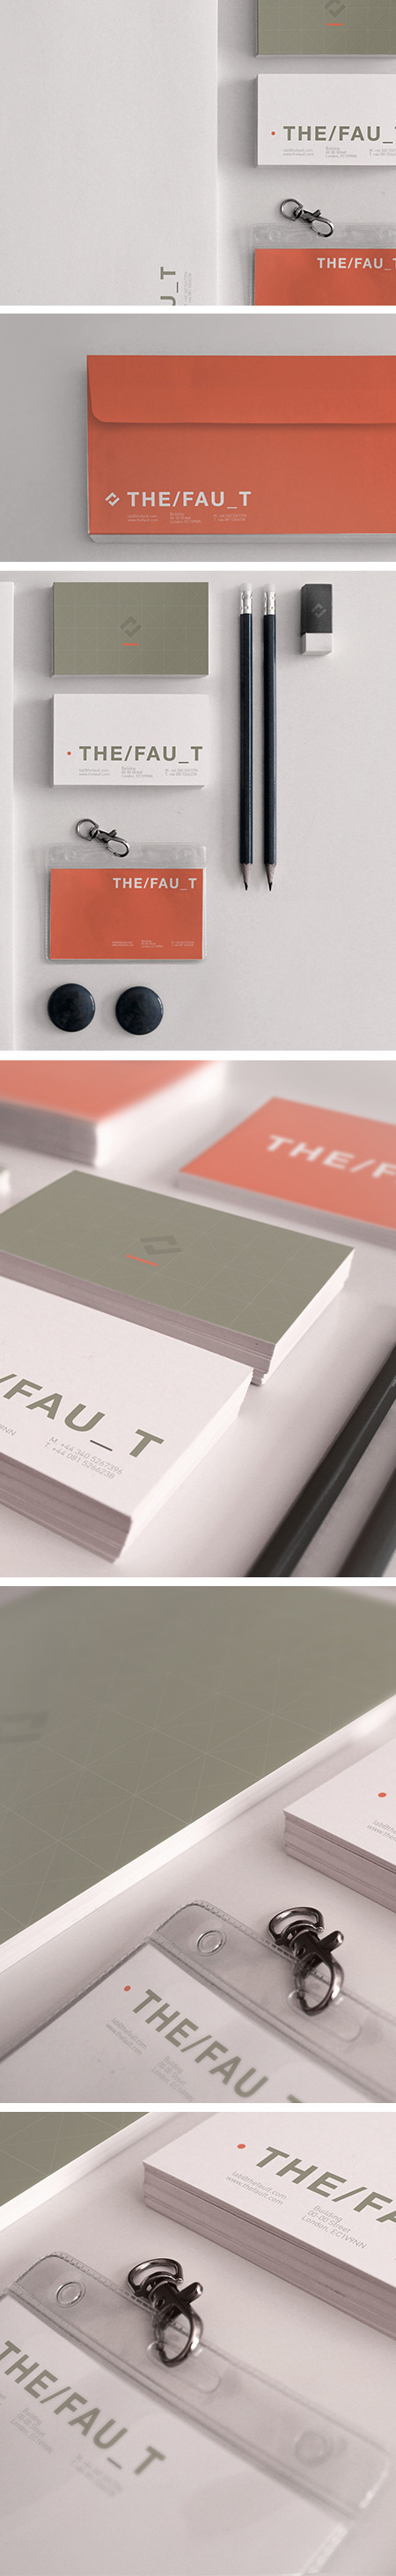 THE/FAU_T #agency #red #business #card #design #graphic #the #corporate #identity #idea #andrea #work